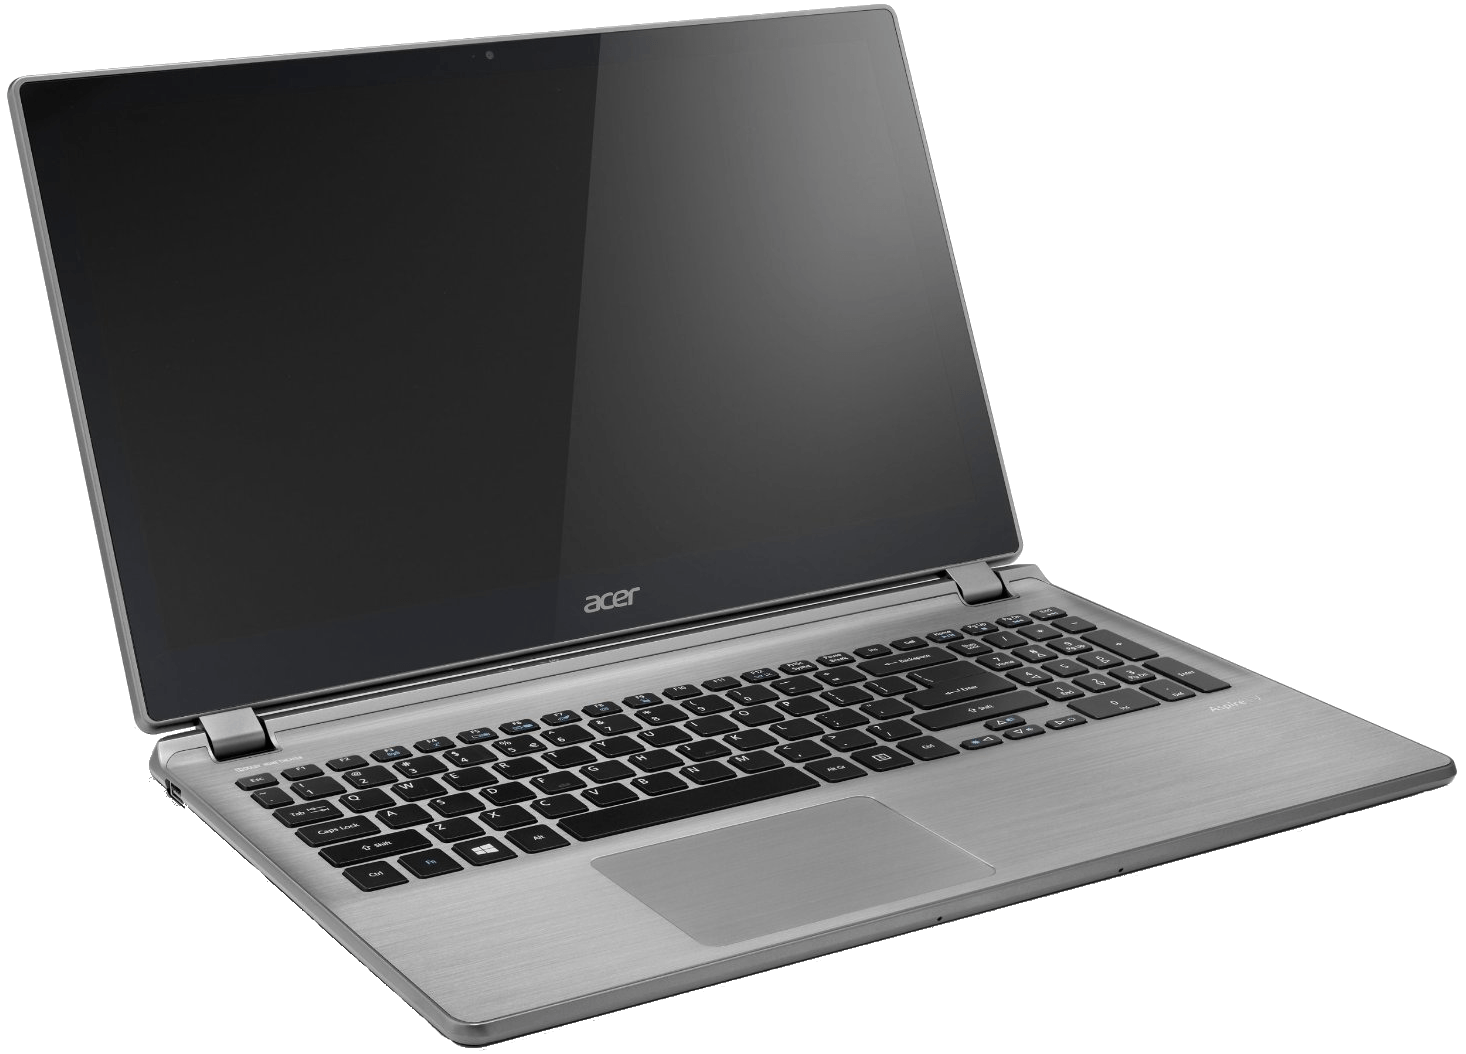 how to open my acer laptop cd drive